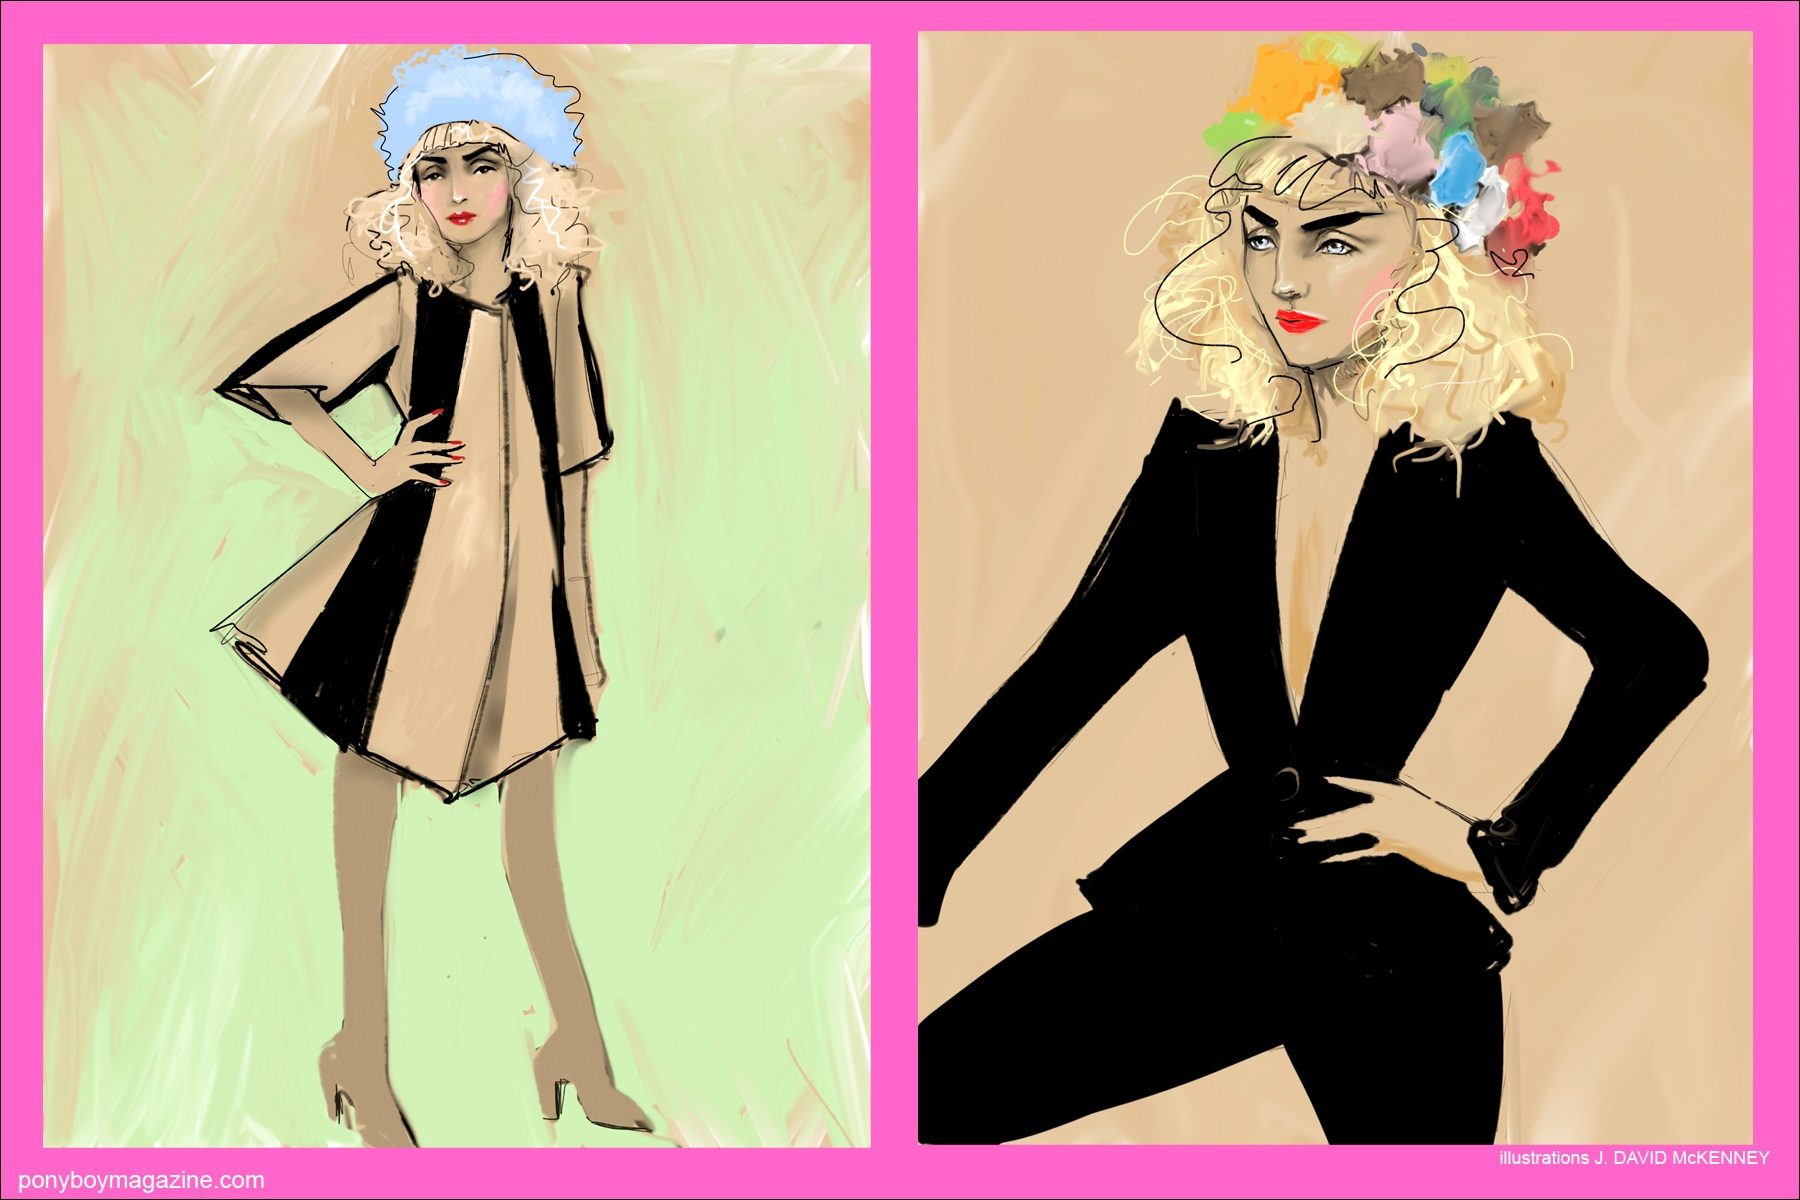 Illustrations of beautiful model Stella Rose Saint Clair for Ponyboy Magazine New York City.